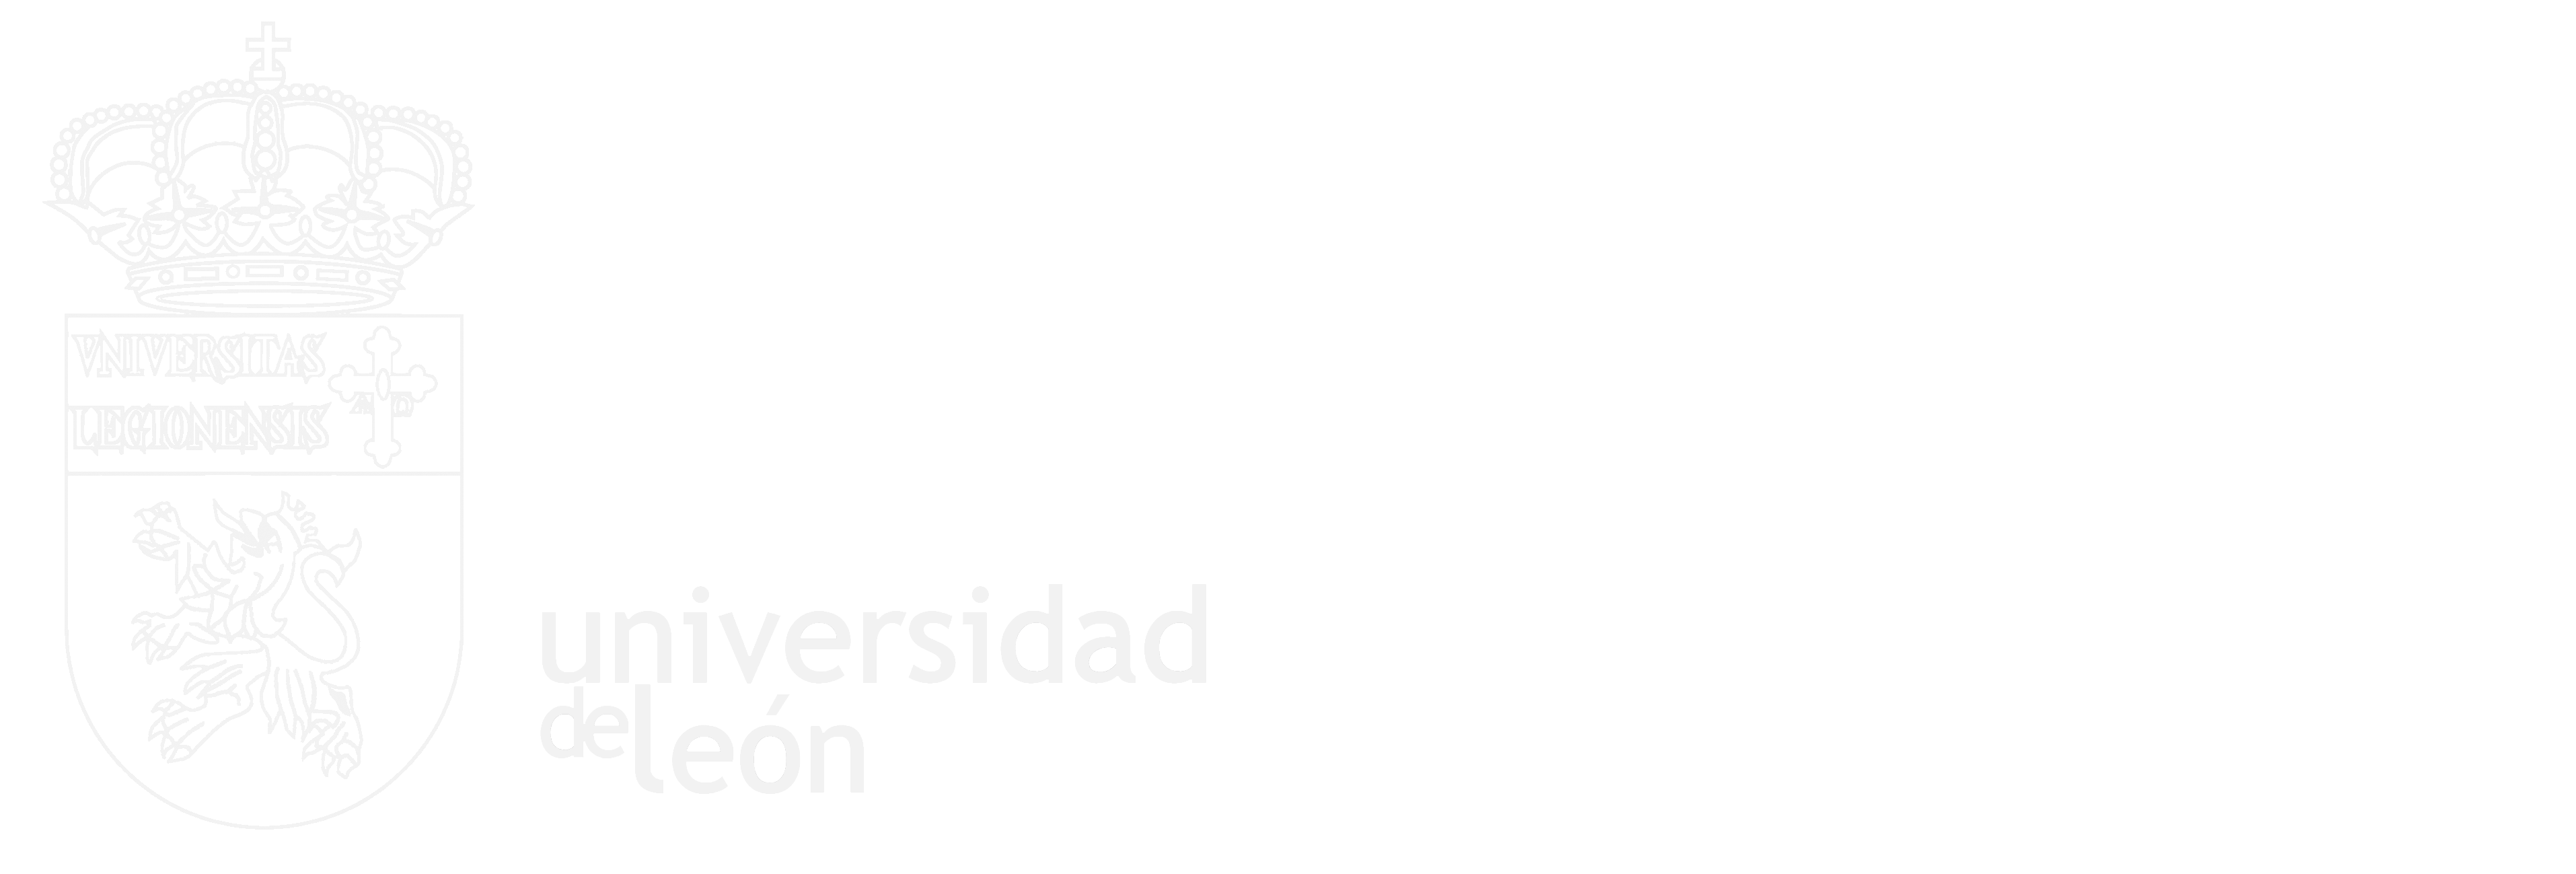 GRUPO SUPPRESS